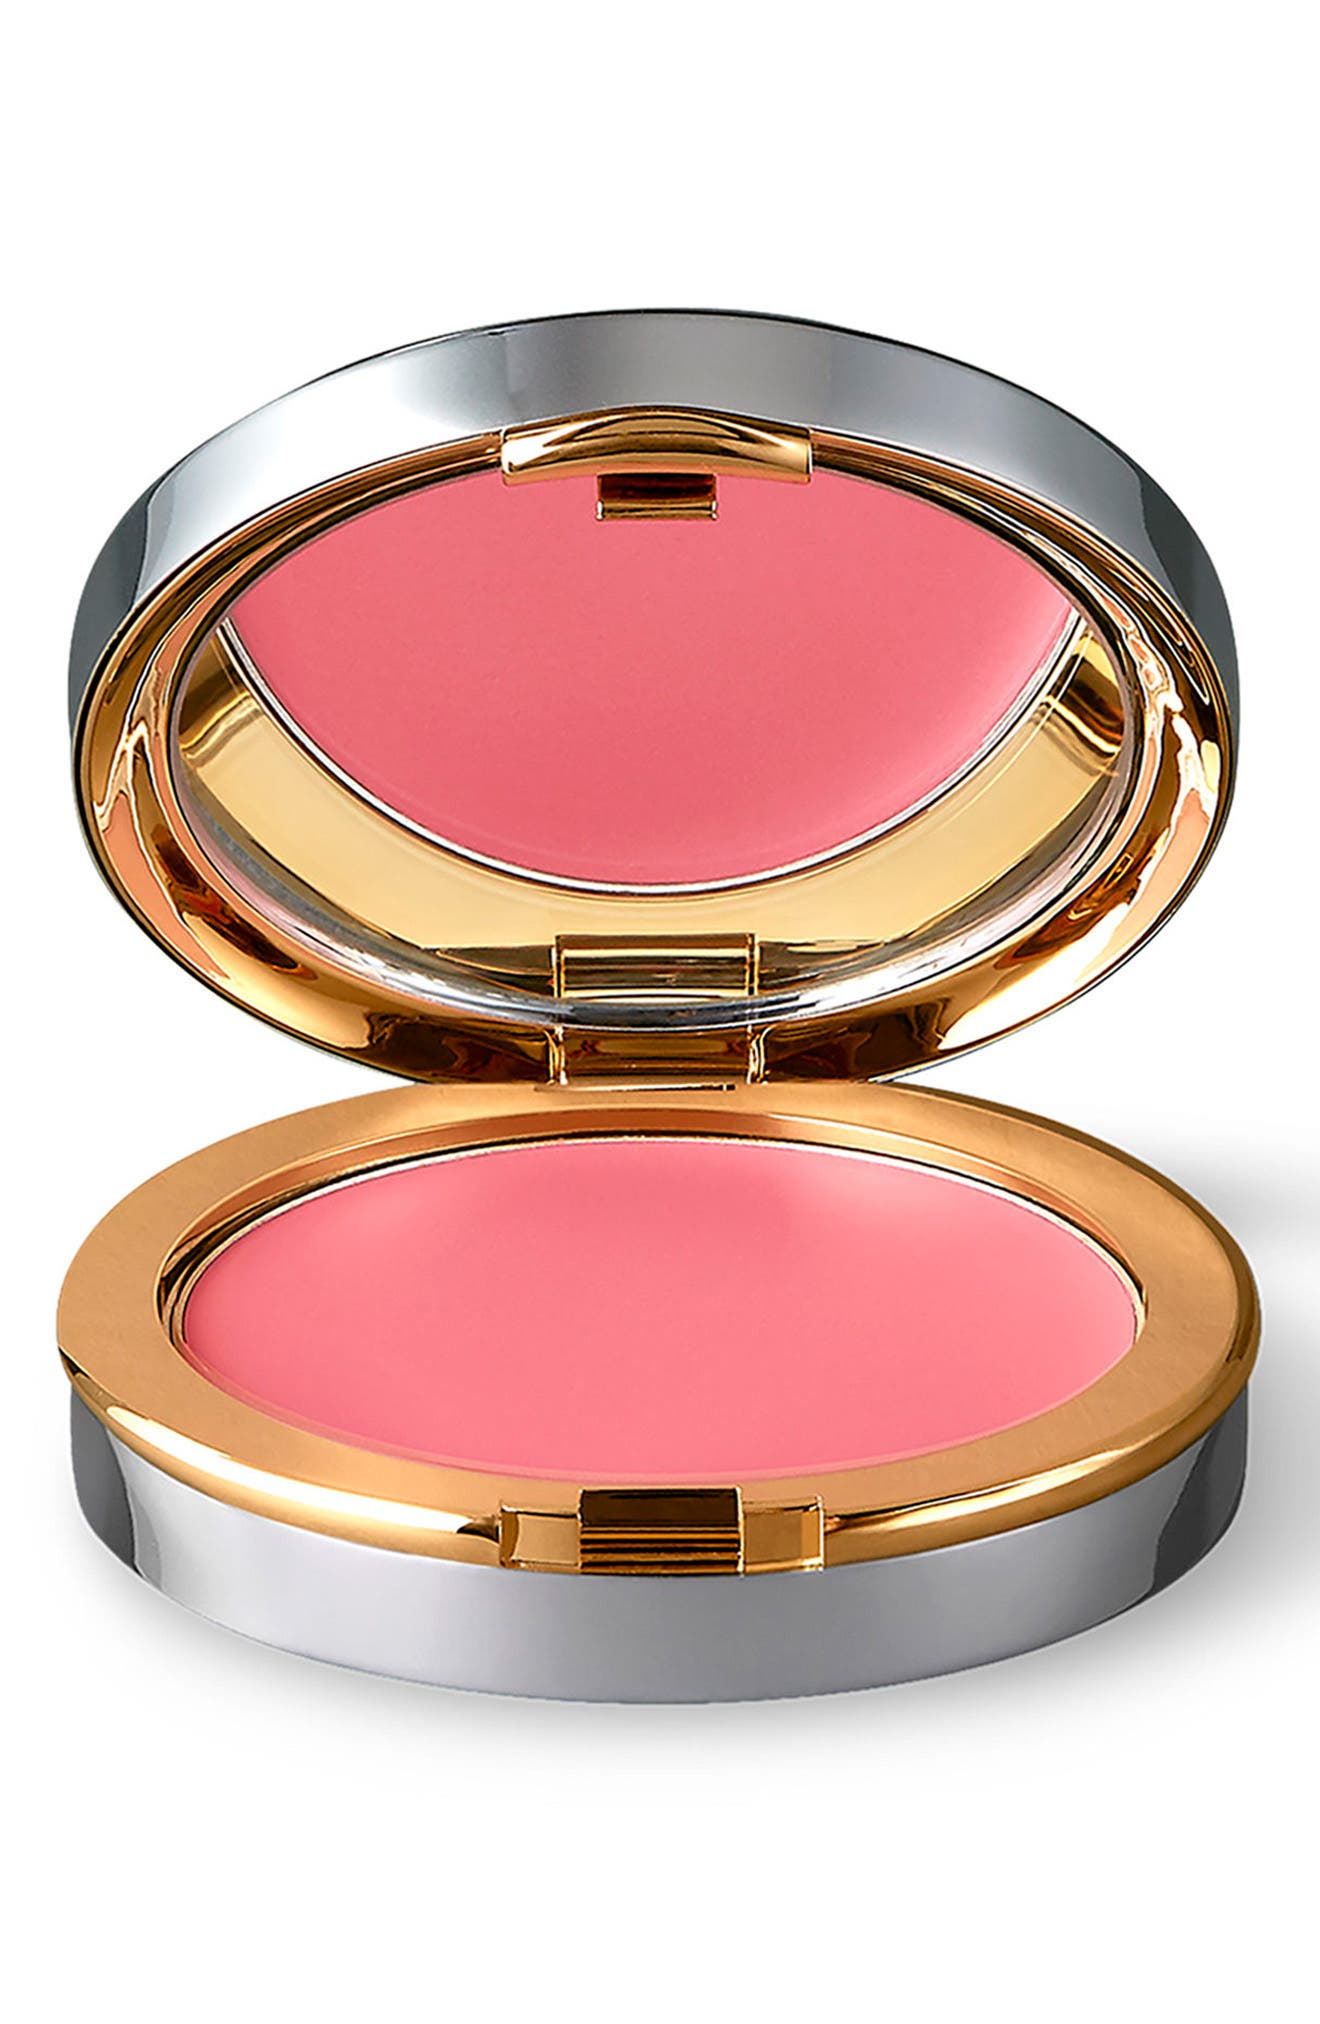 Main Image - La Prairie Cellular Radiance Cream Blush